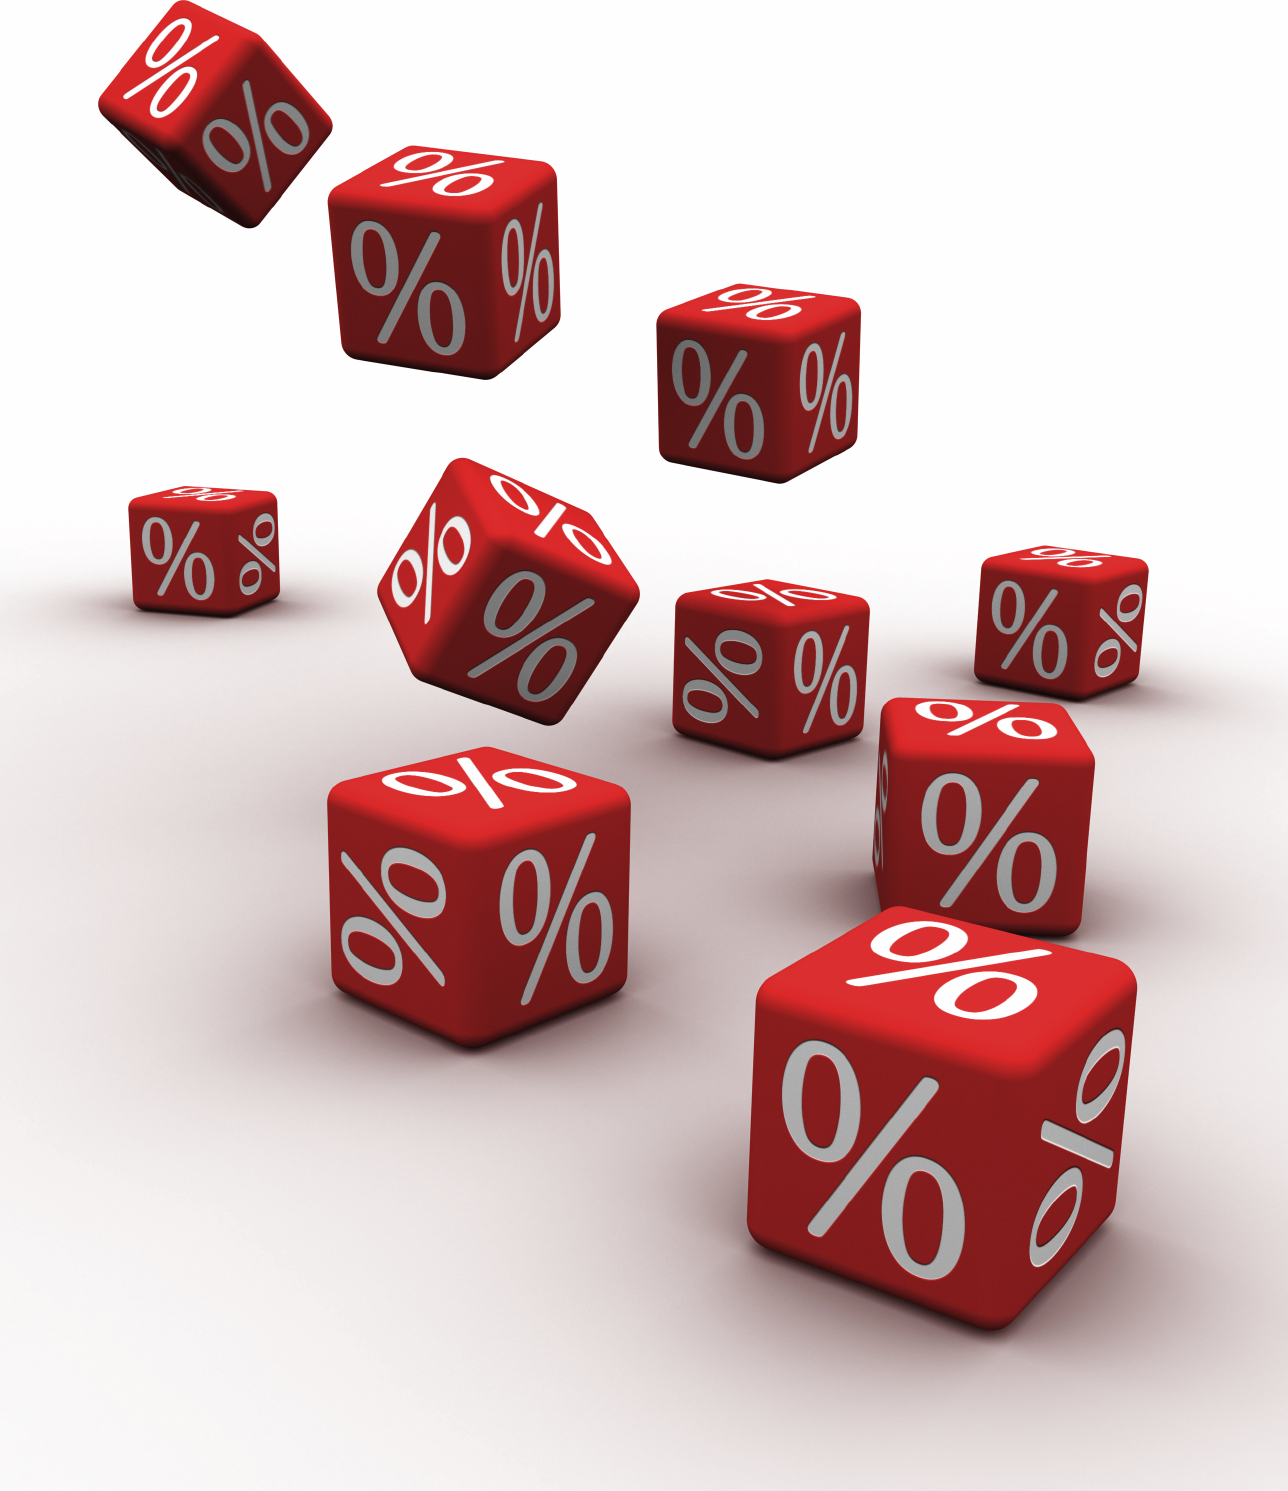 Should interest rates be frozen for two years?